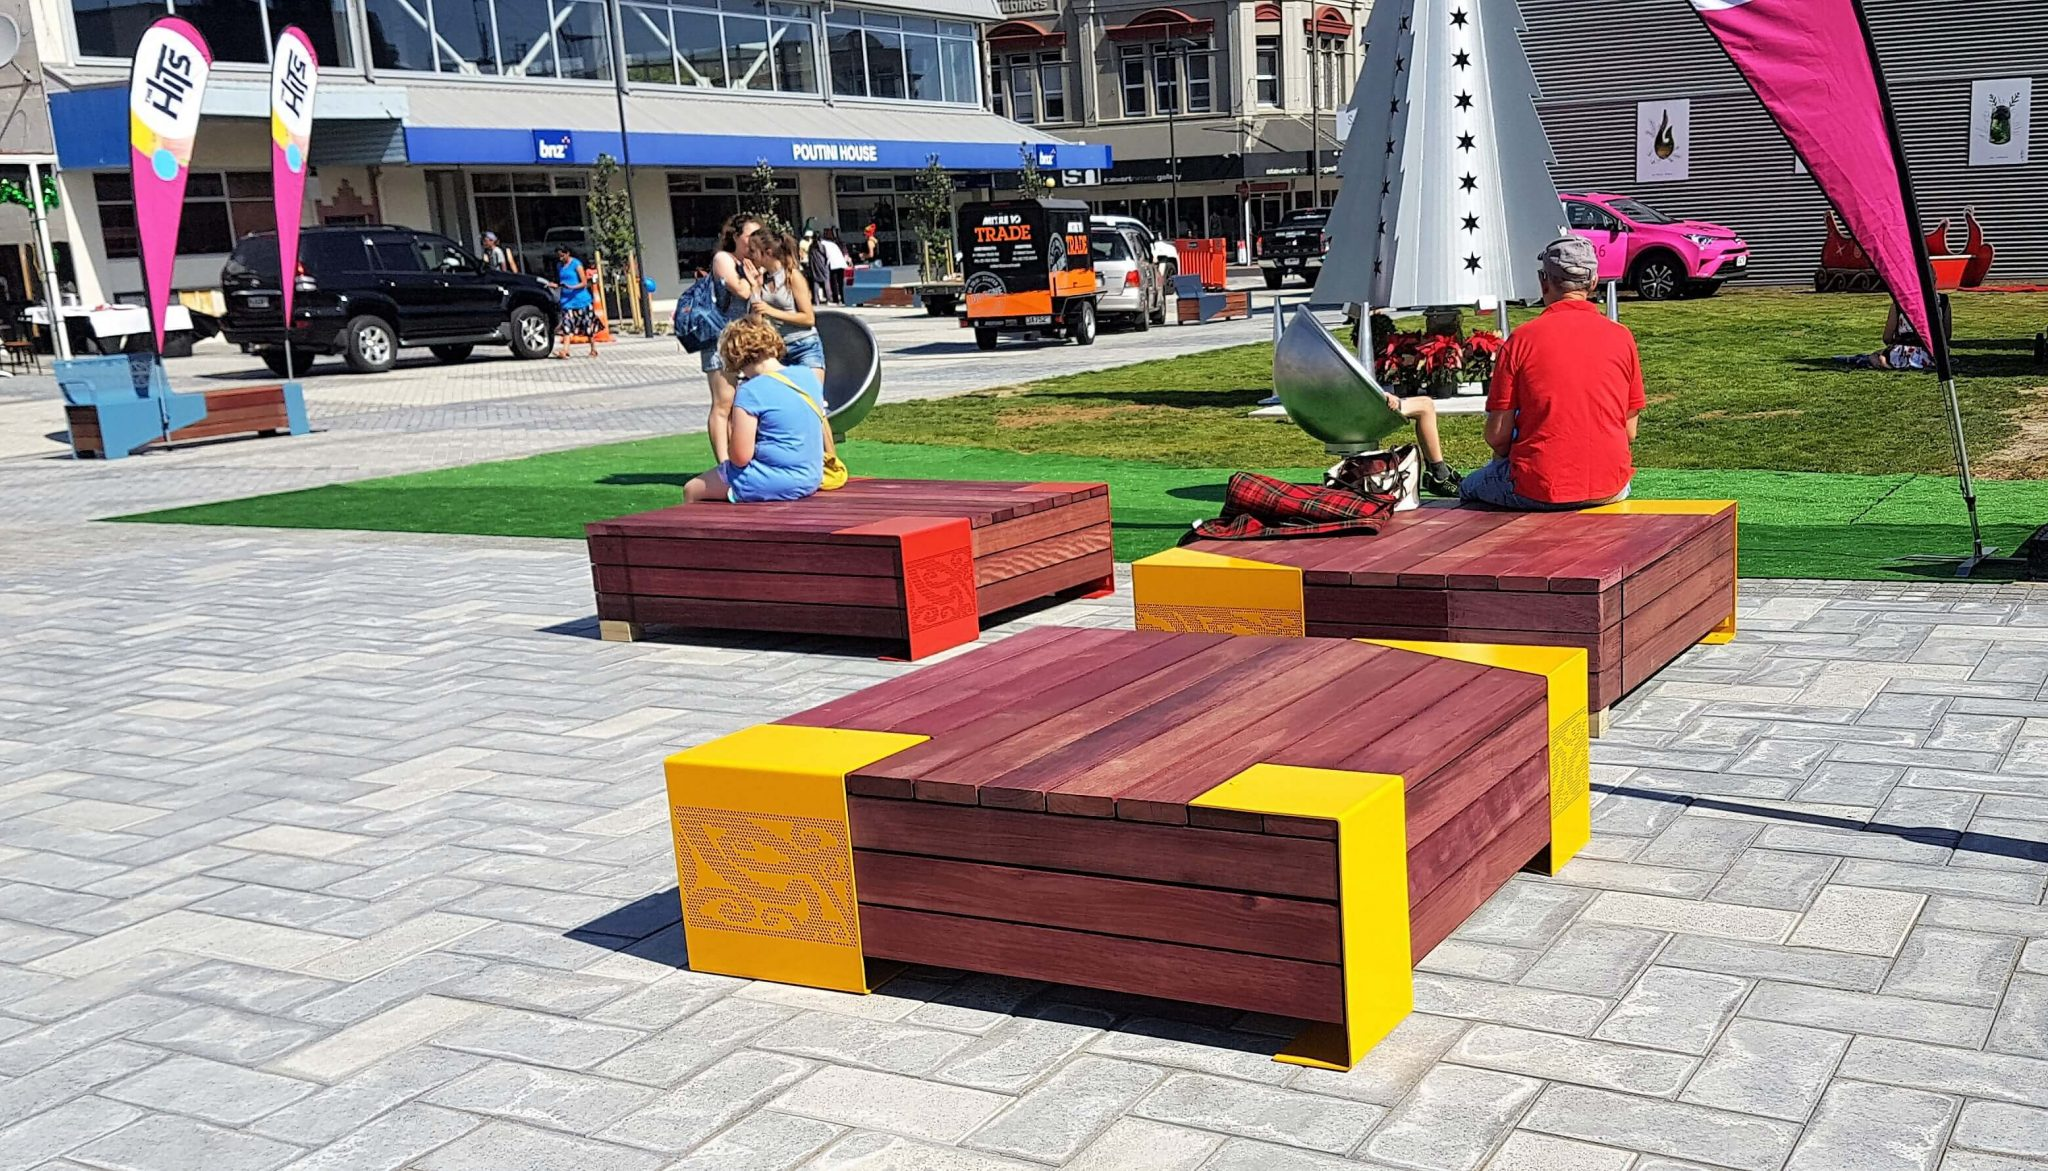 Logic were privileged to work with the grey district council to develop a range of bespoke street furniture for the towns brand new square in the cbd